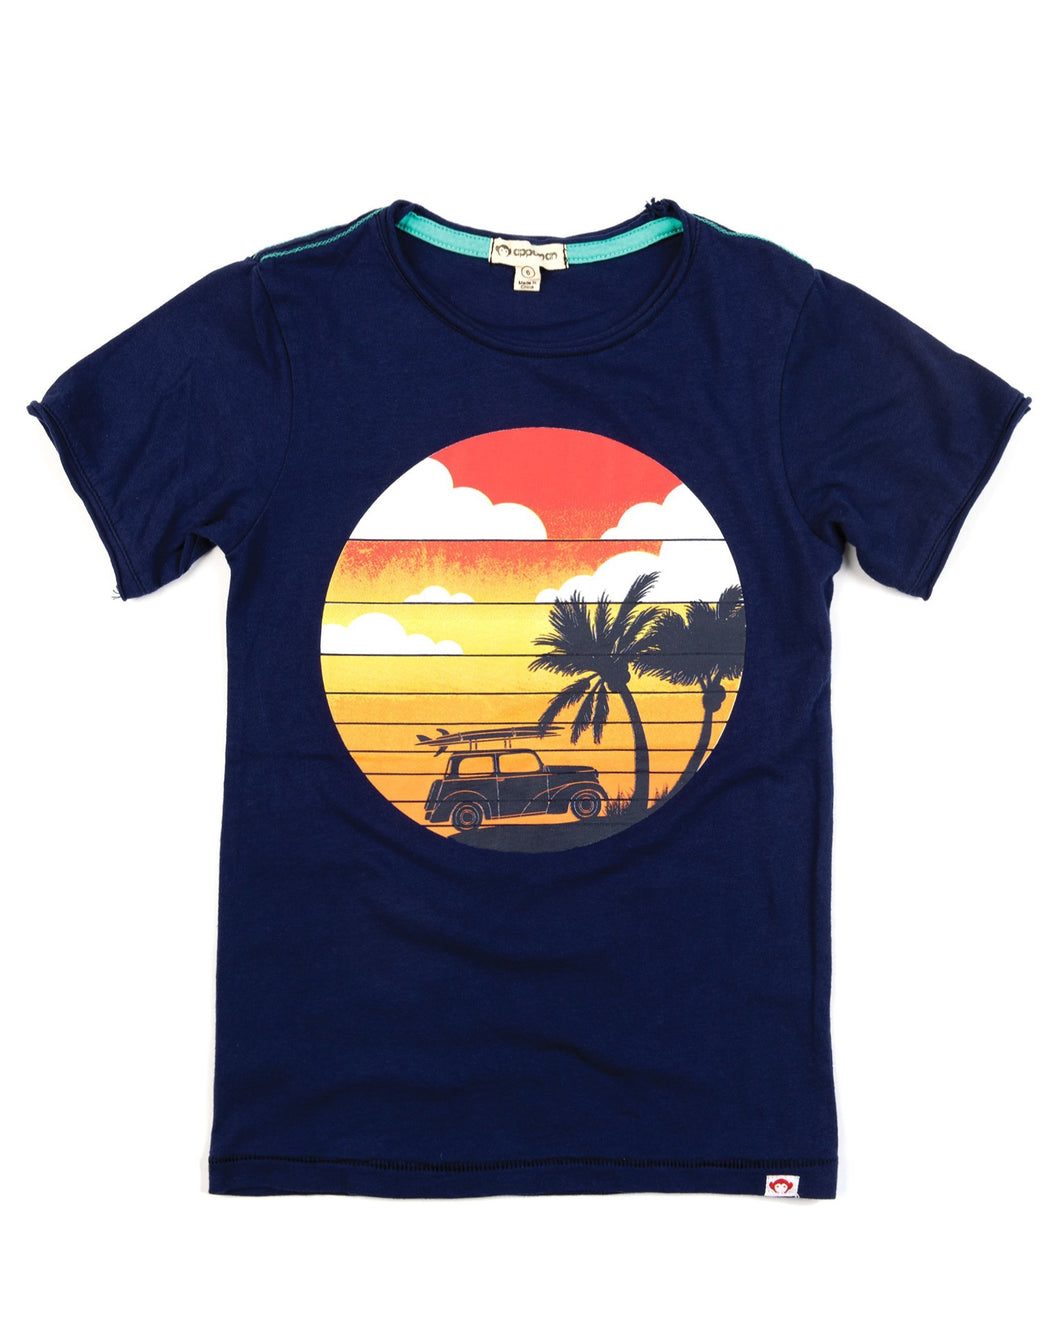 Appaman 70s surf inspired beachy Tee